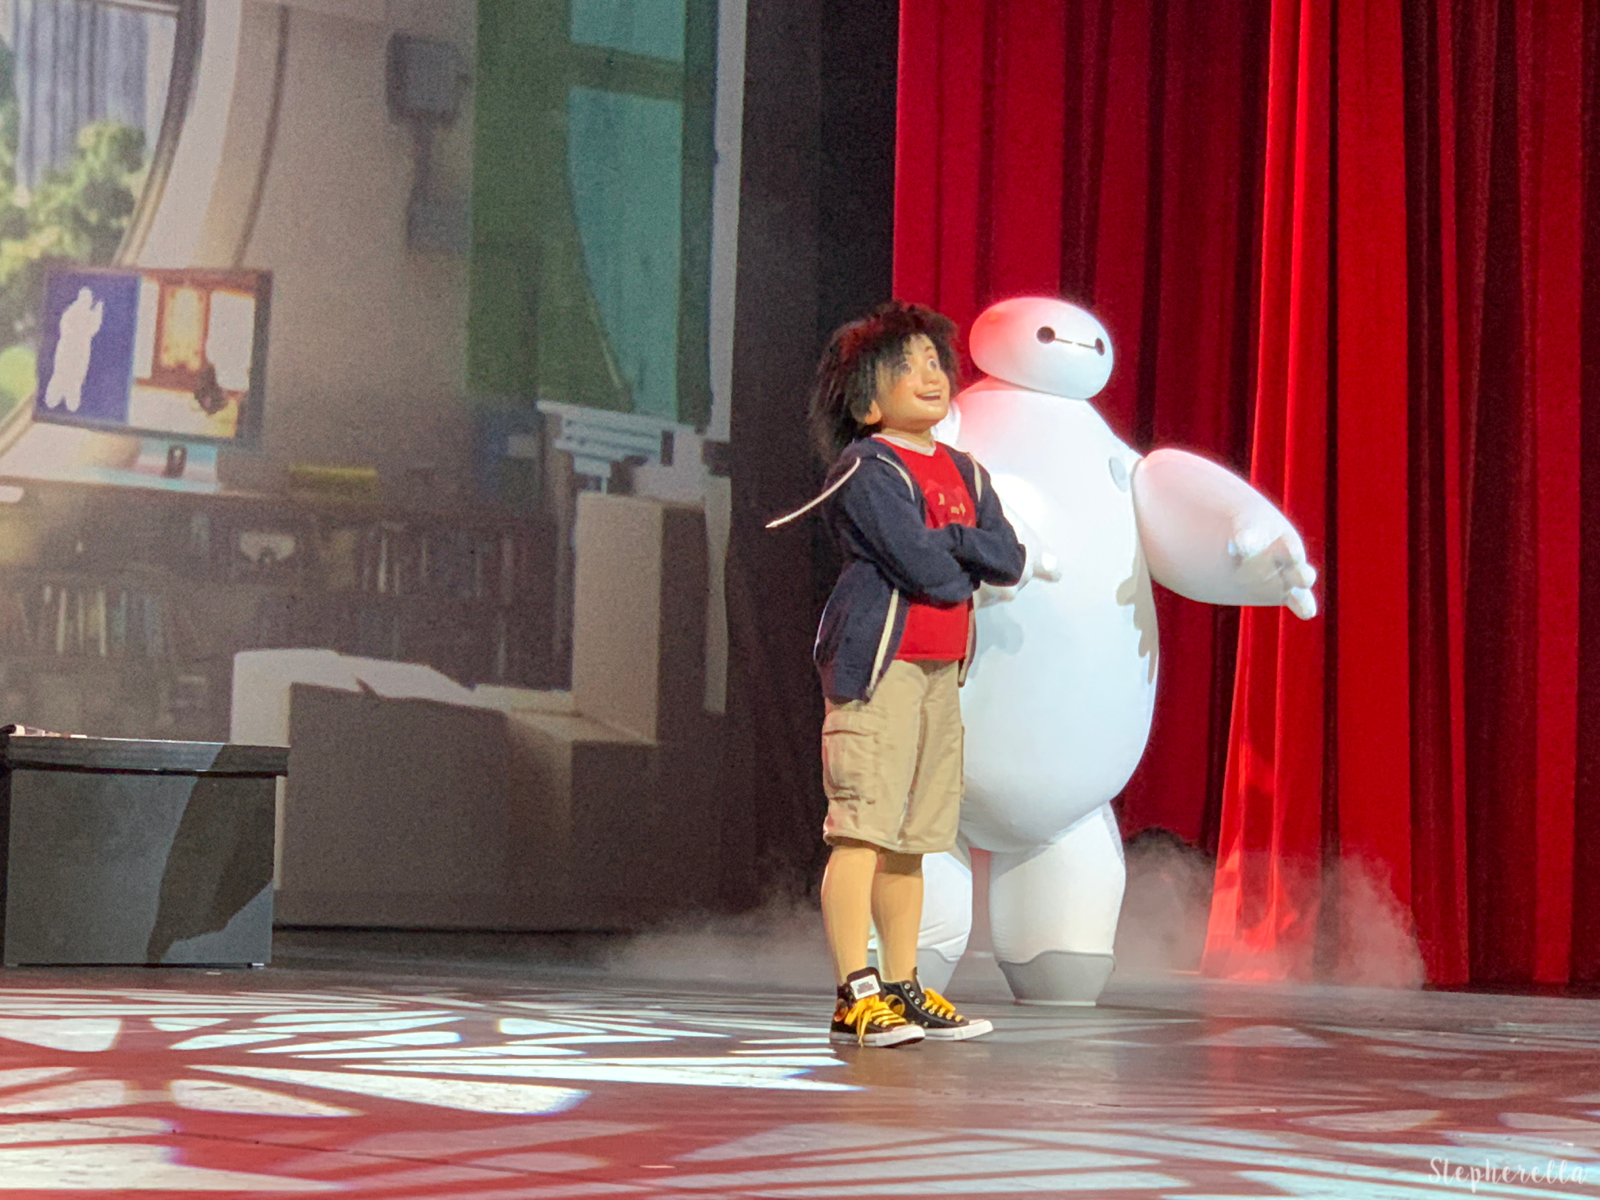 Hiro and Baymax Big Hero 6 Disneyland Paris